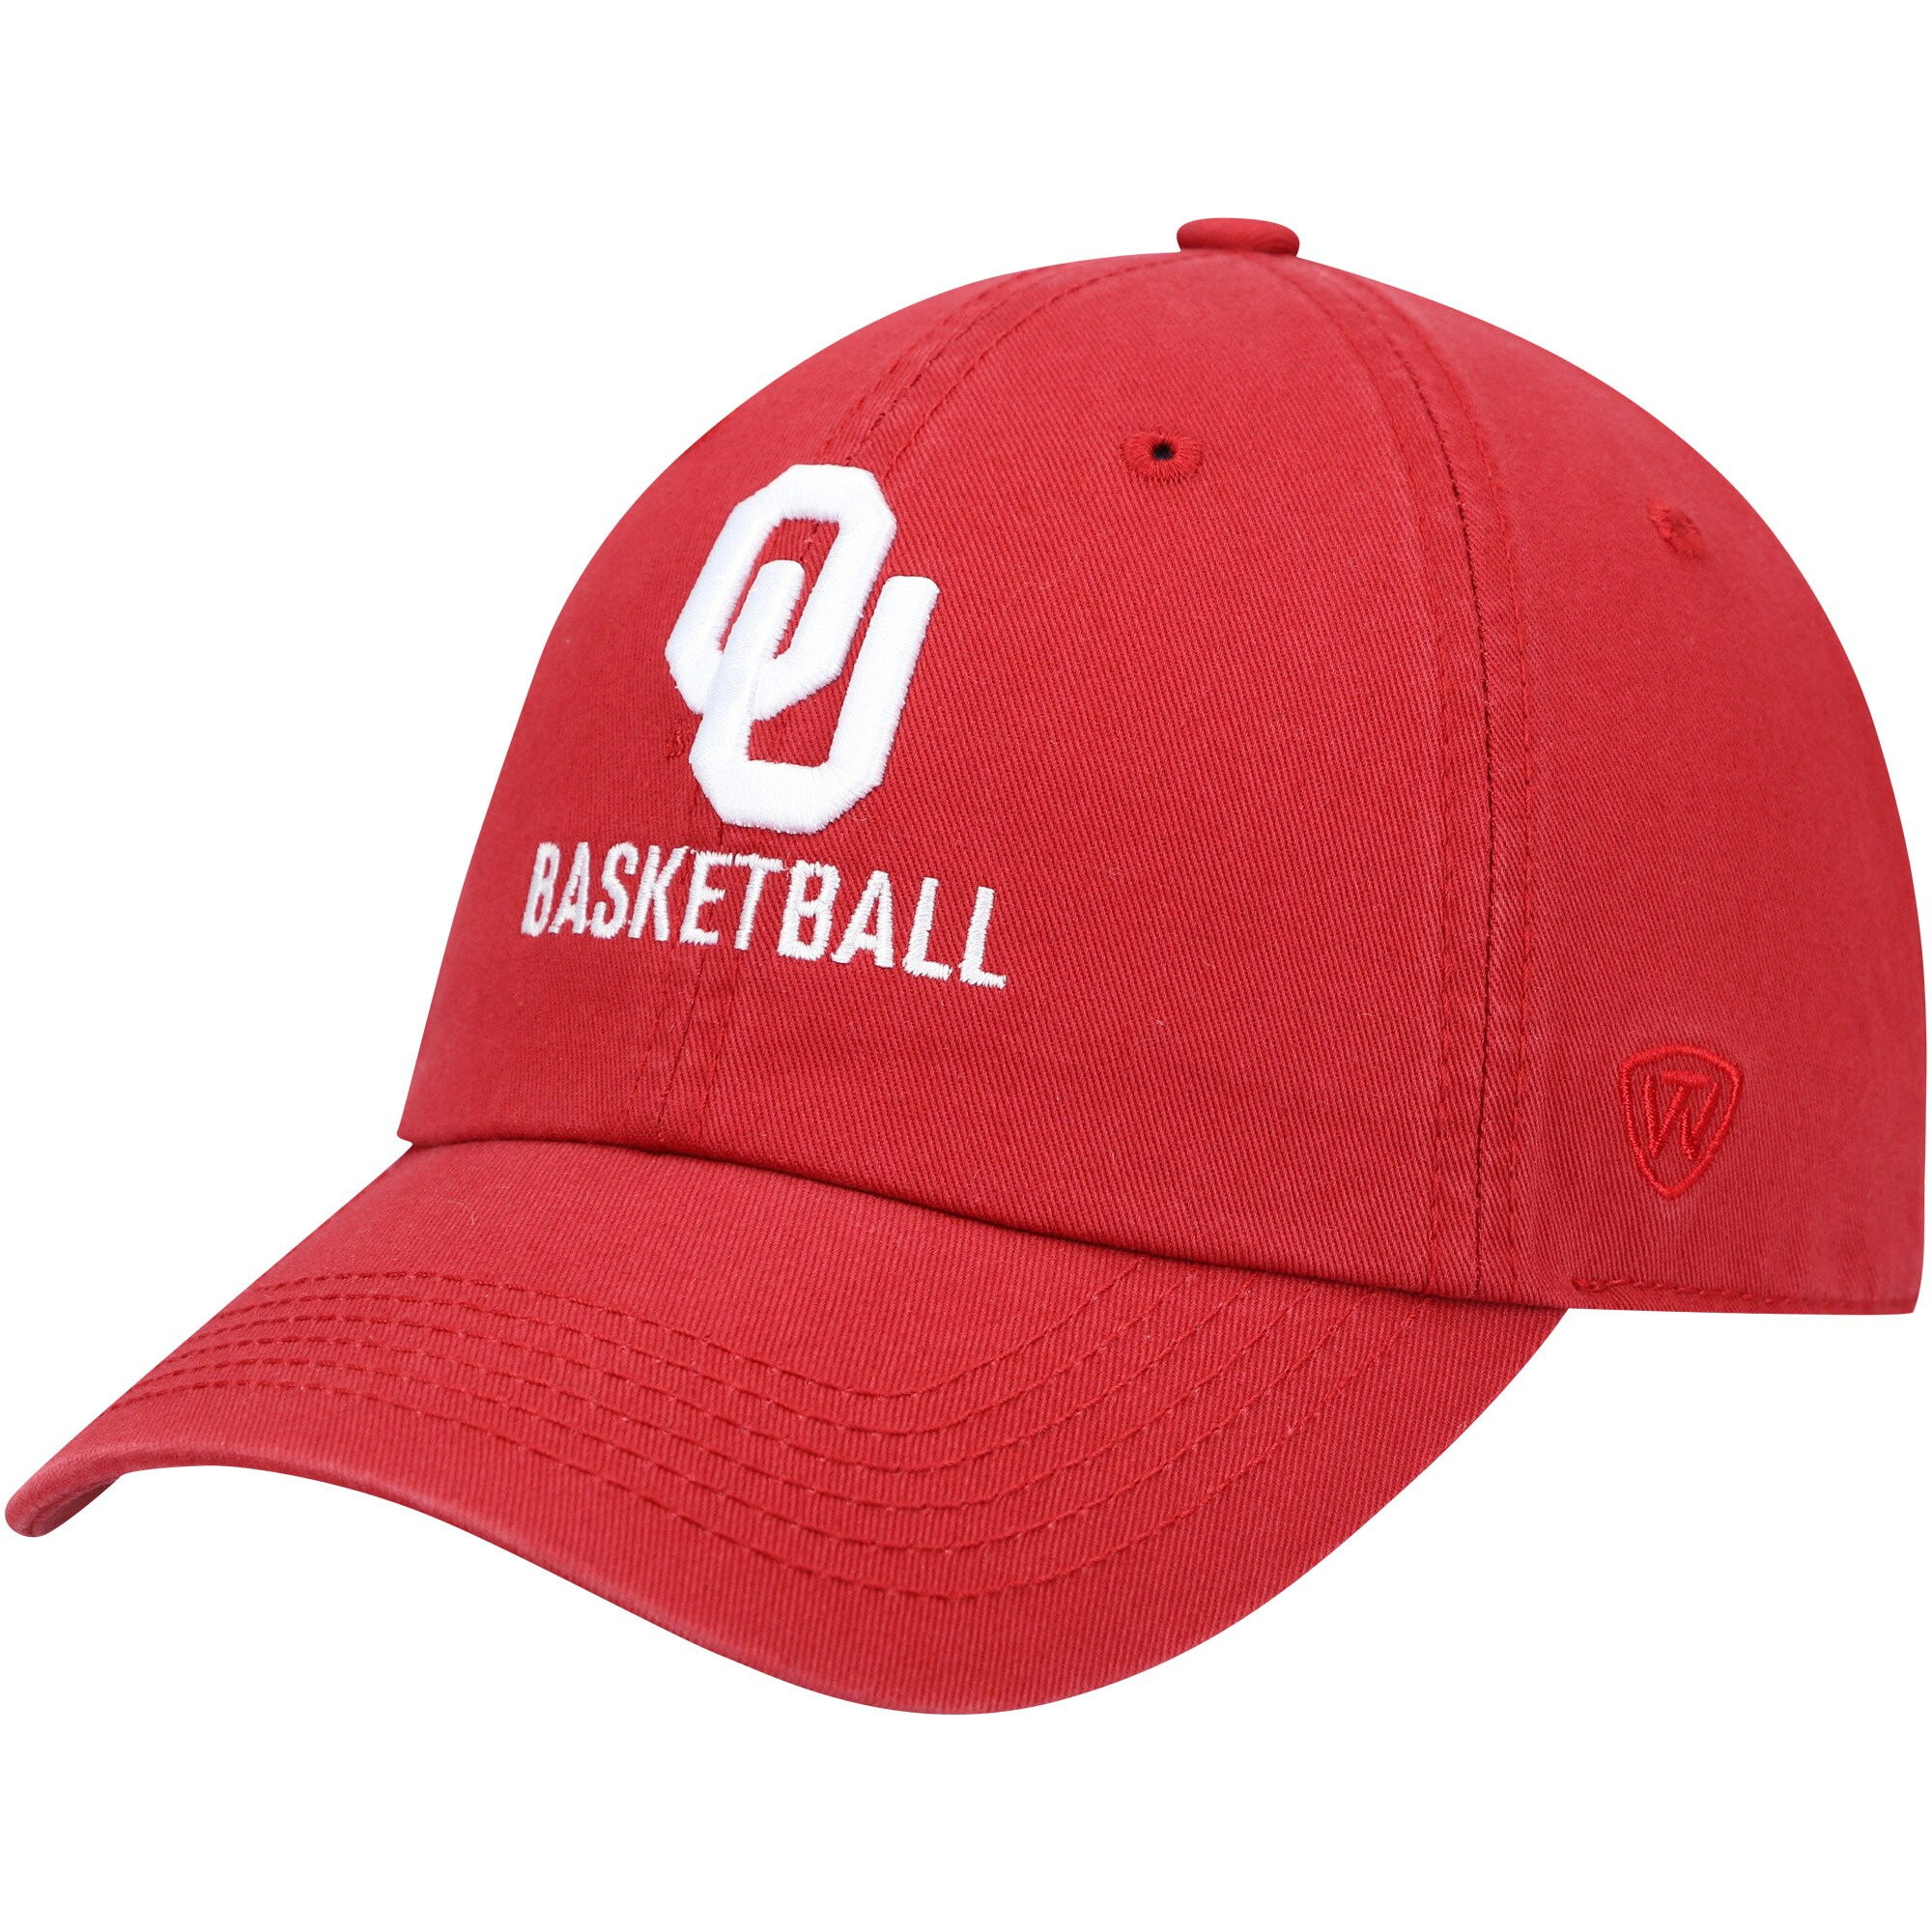 Oklahoma Sooners Top of the World Basketball Crew Adjustable Hat - Crimson